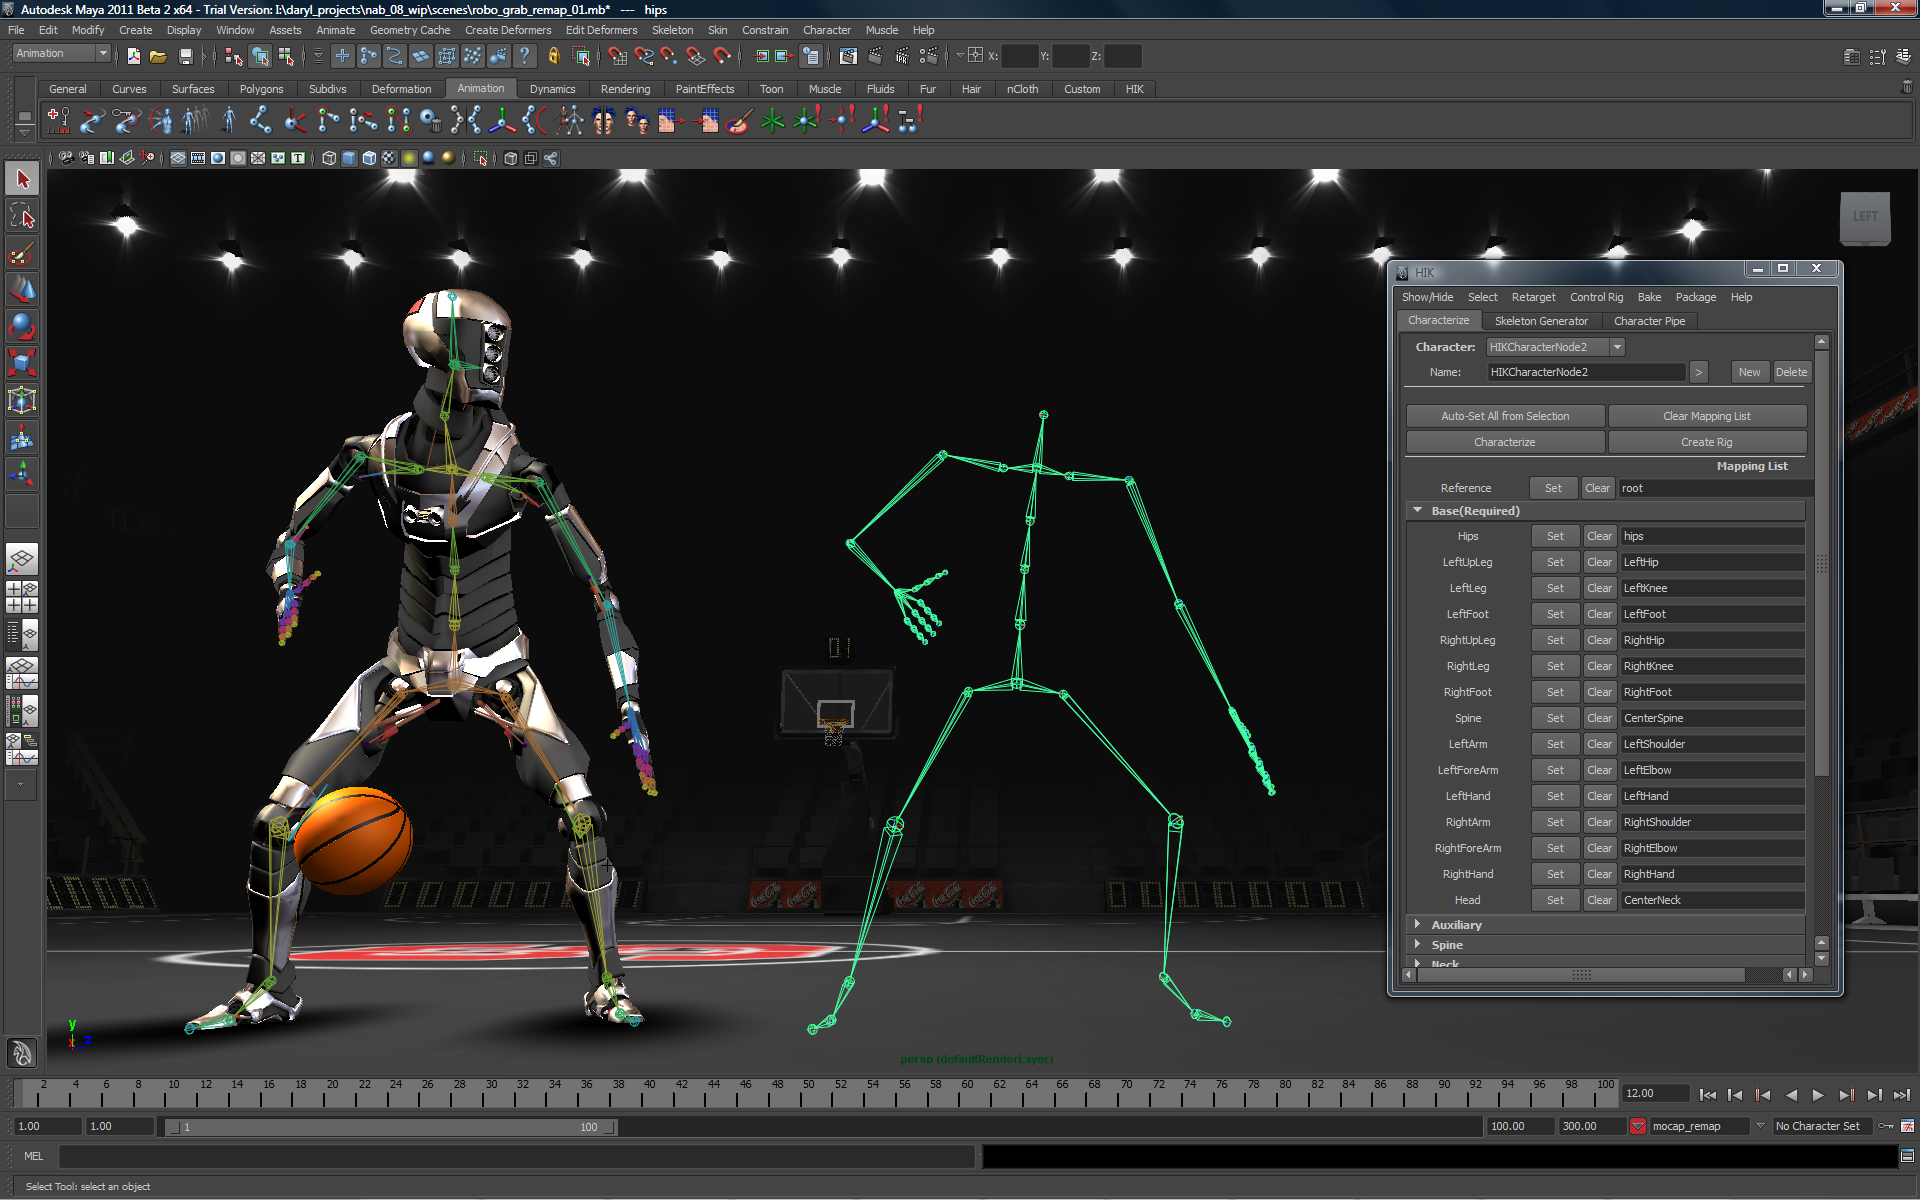 autodesk-maya-2011-screenshot